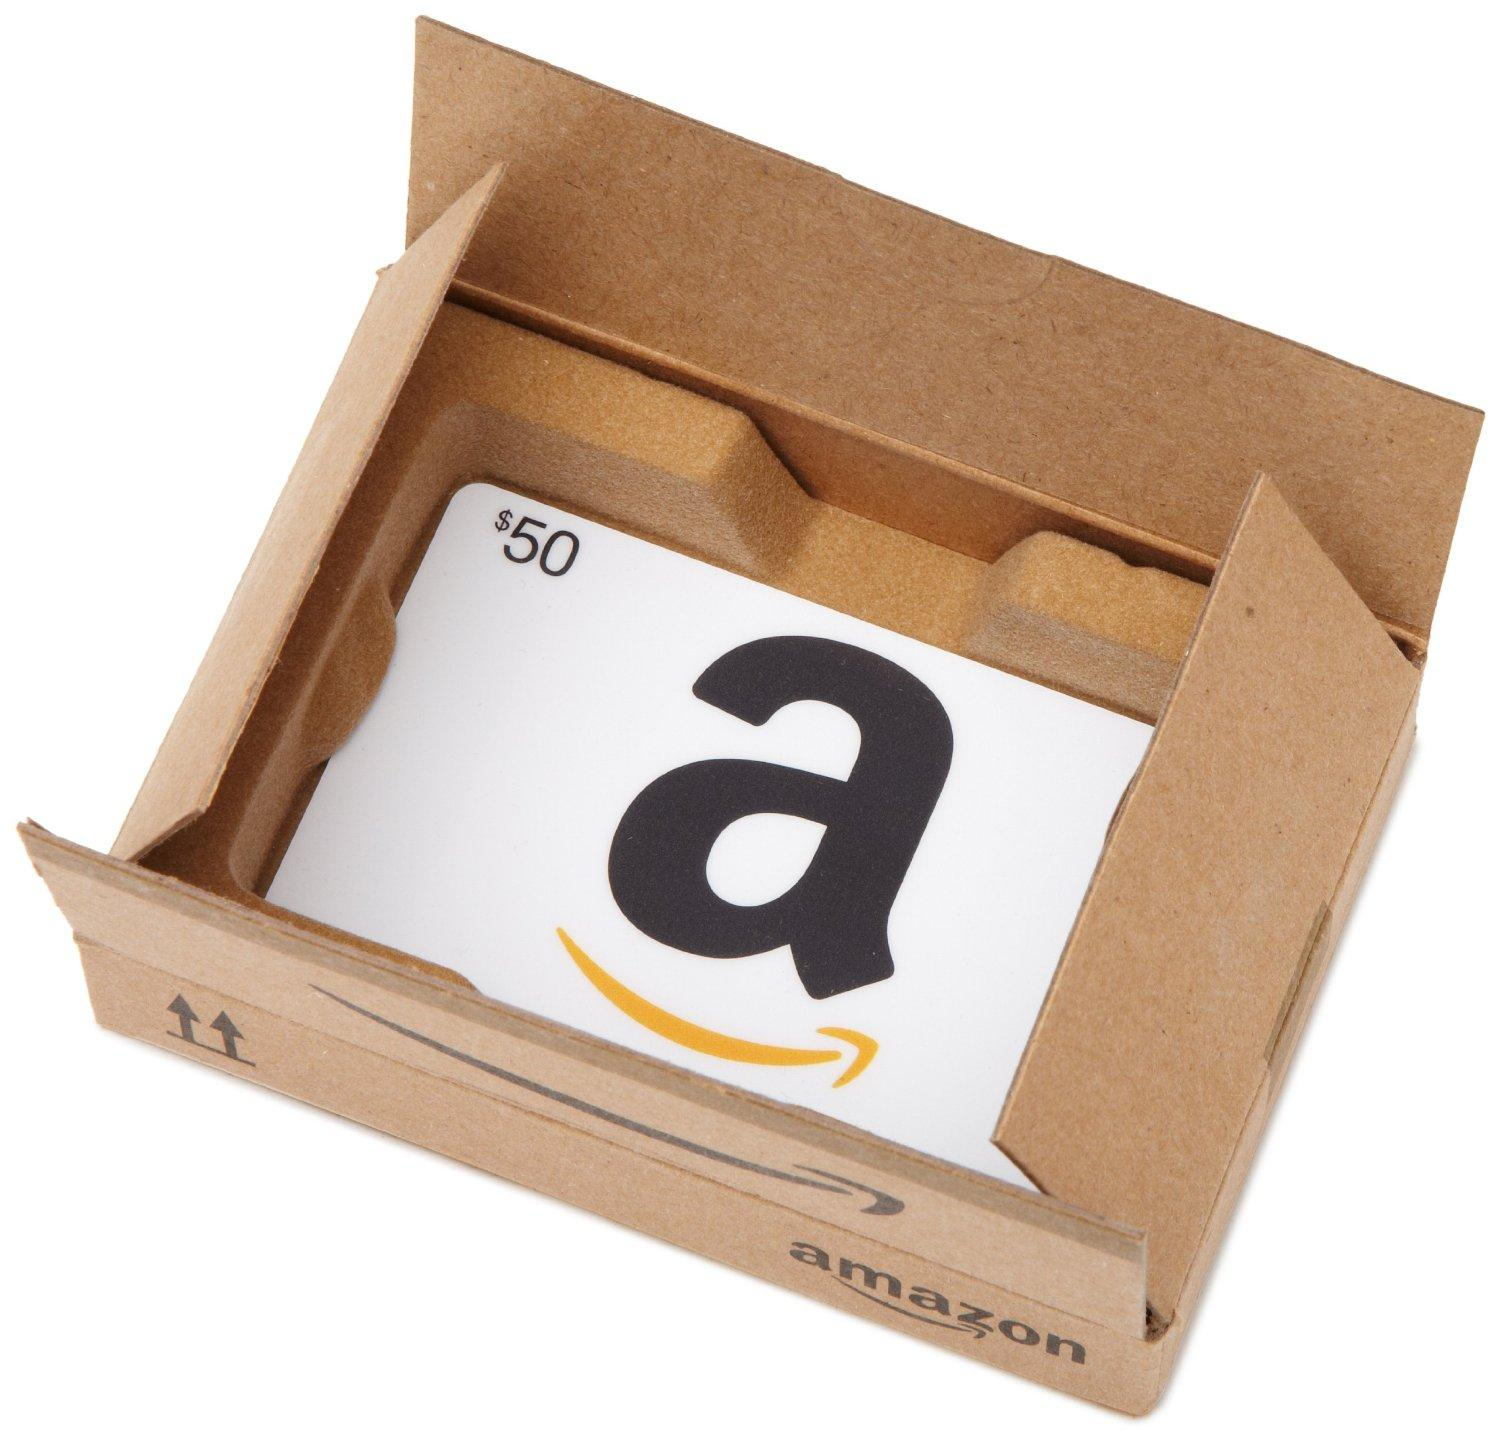 Free $10 Gift Card With Purchase of $50 or More Amazon Gift Card @ Amazon